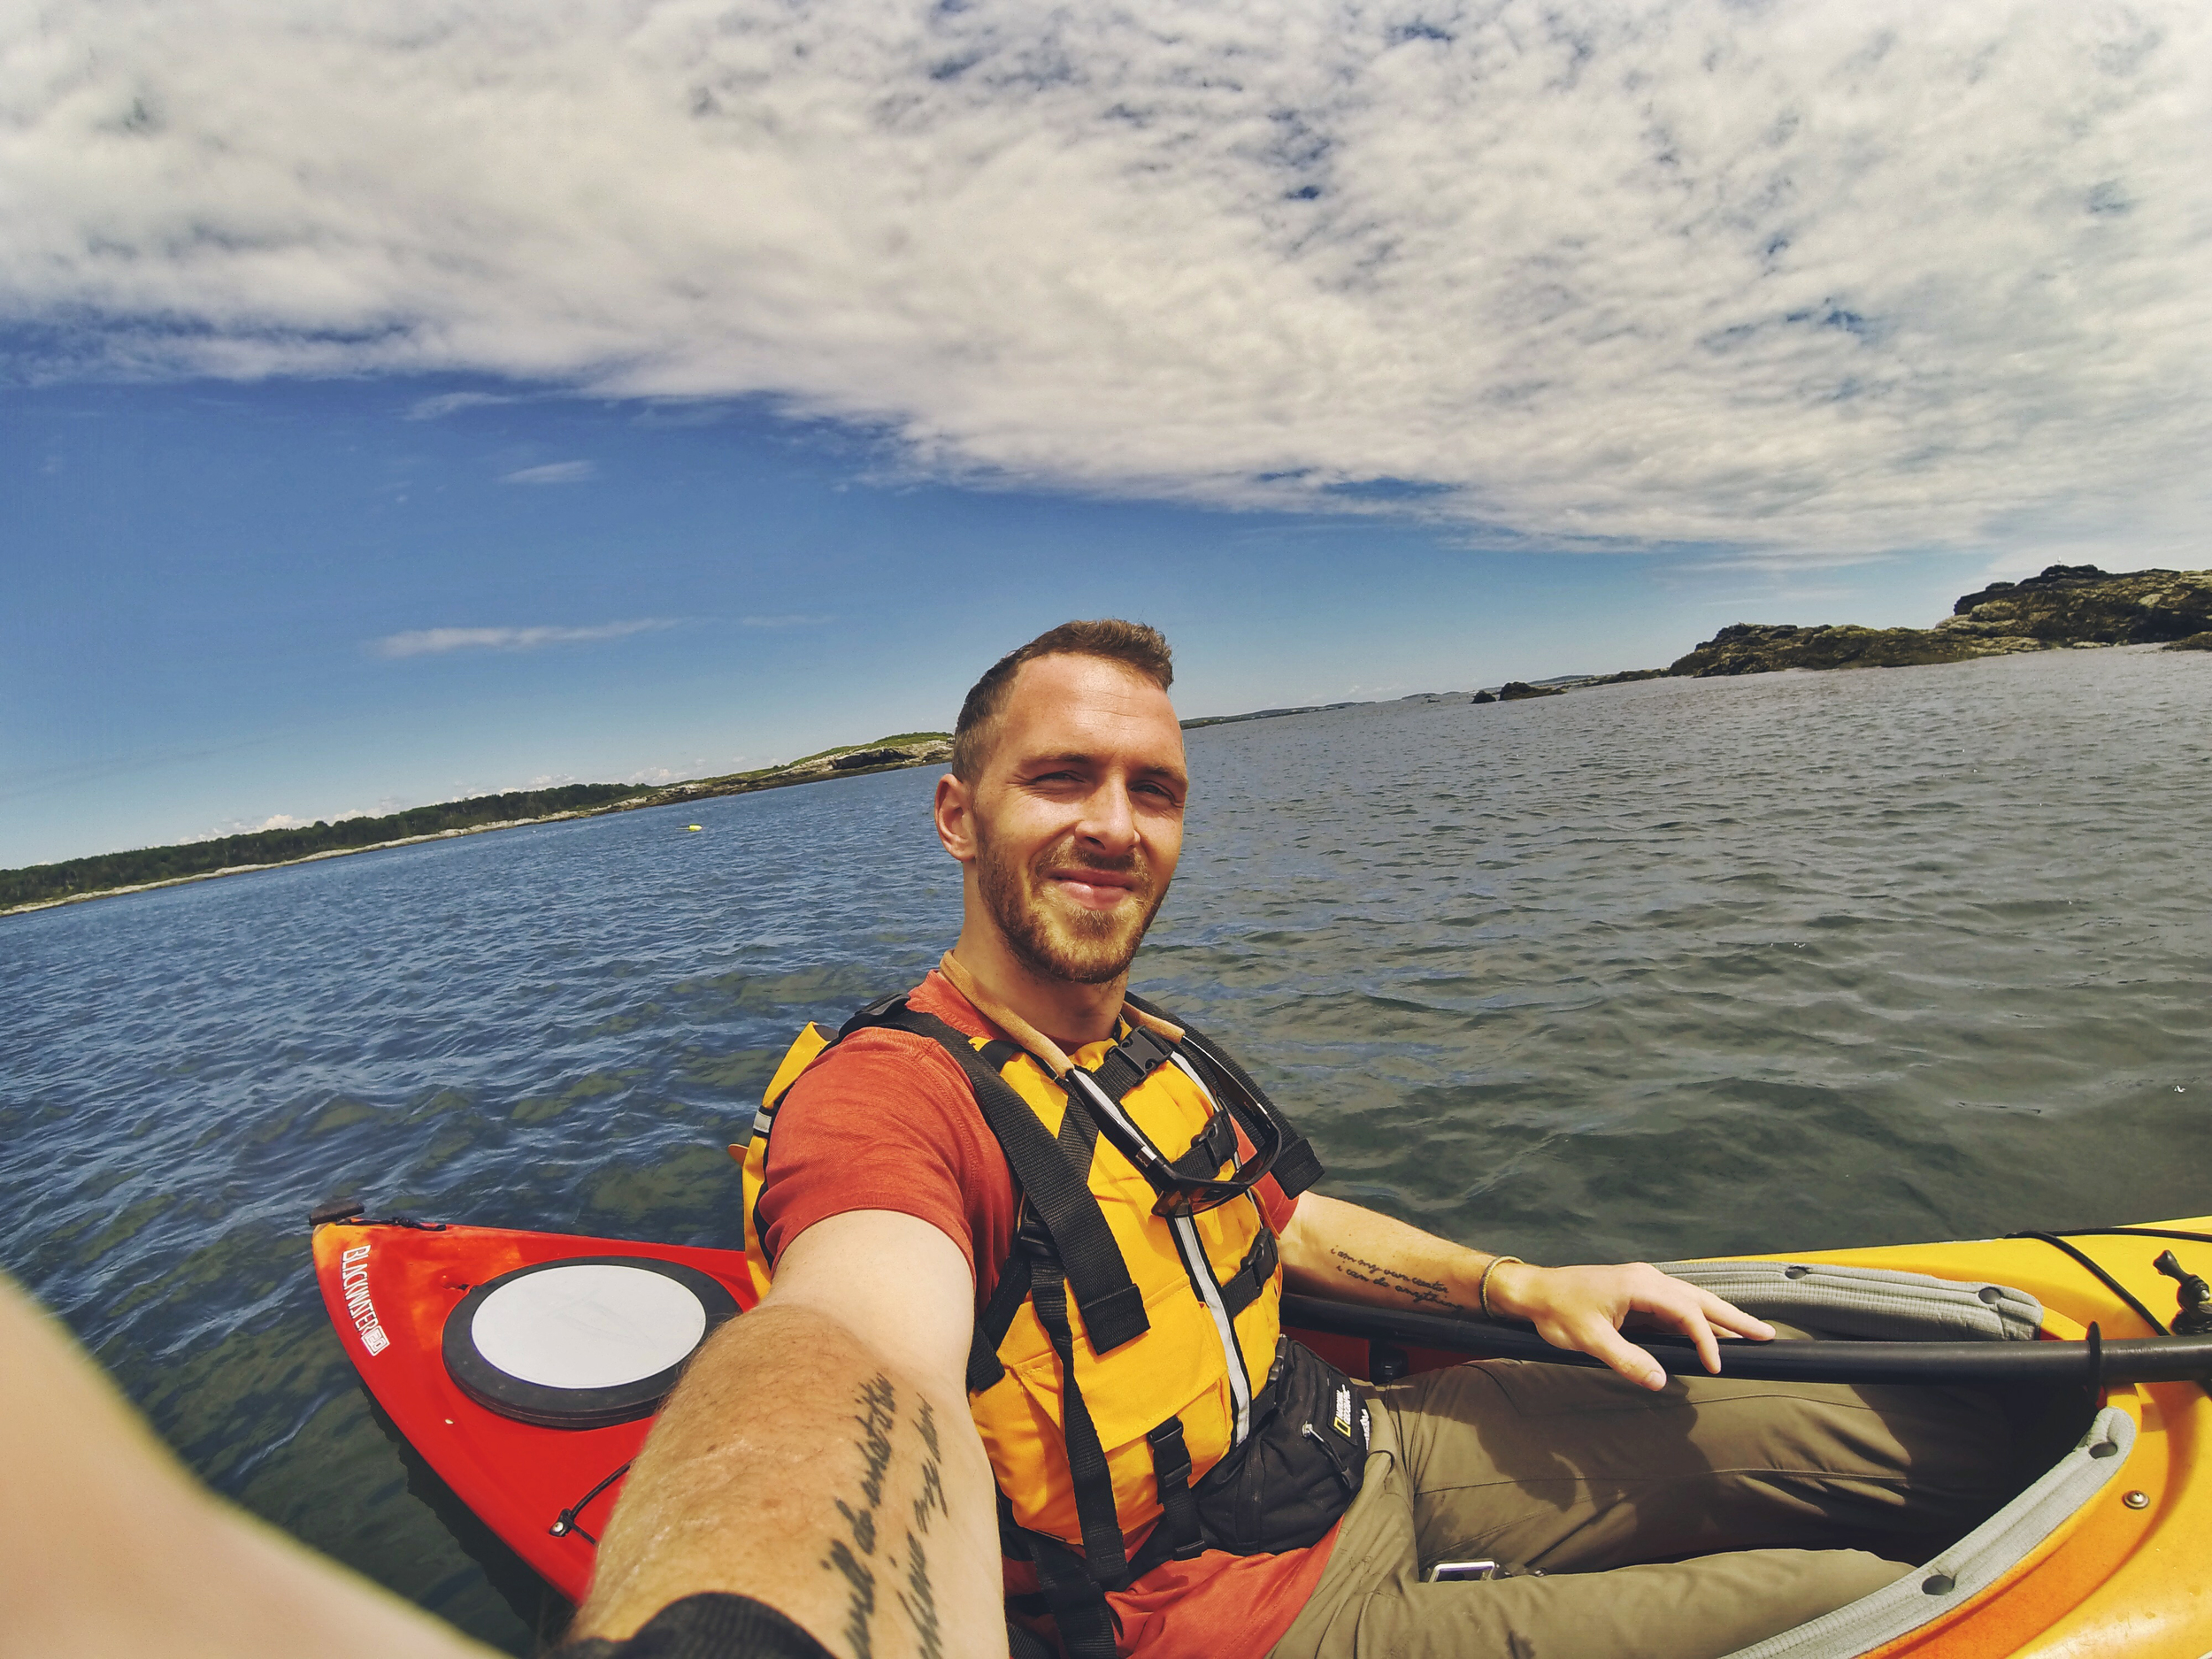 Couldn't ask for a more perfect day to sea kayak!